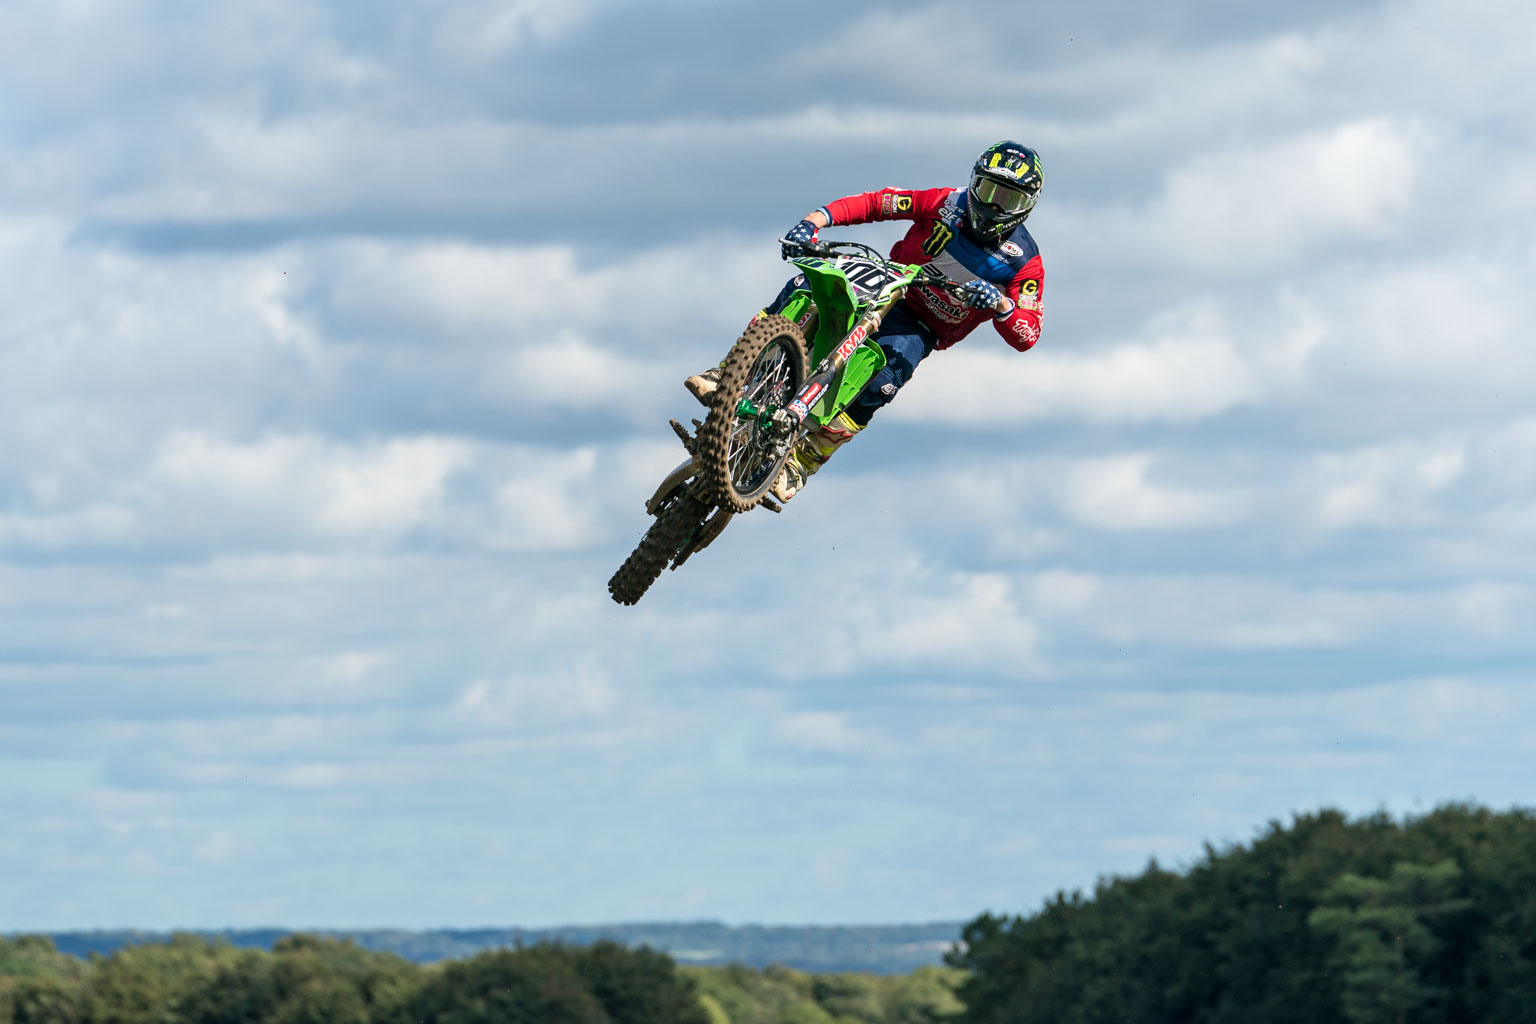 Tommy Searle's 450 is on loan to Marshal Welton for the Nations